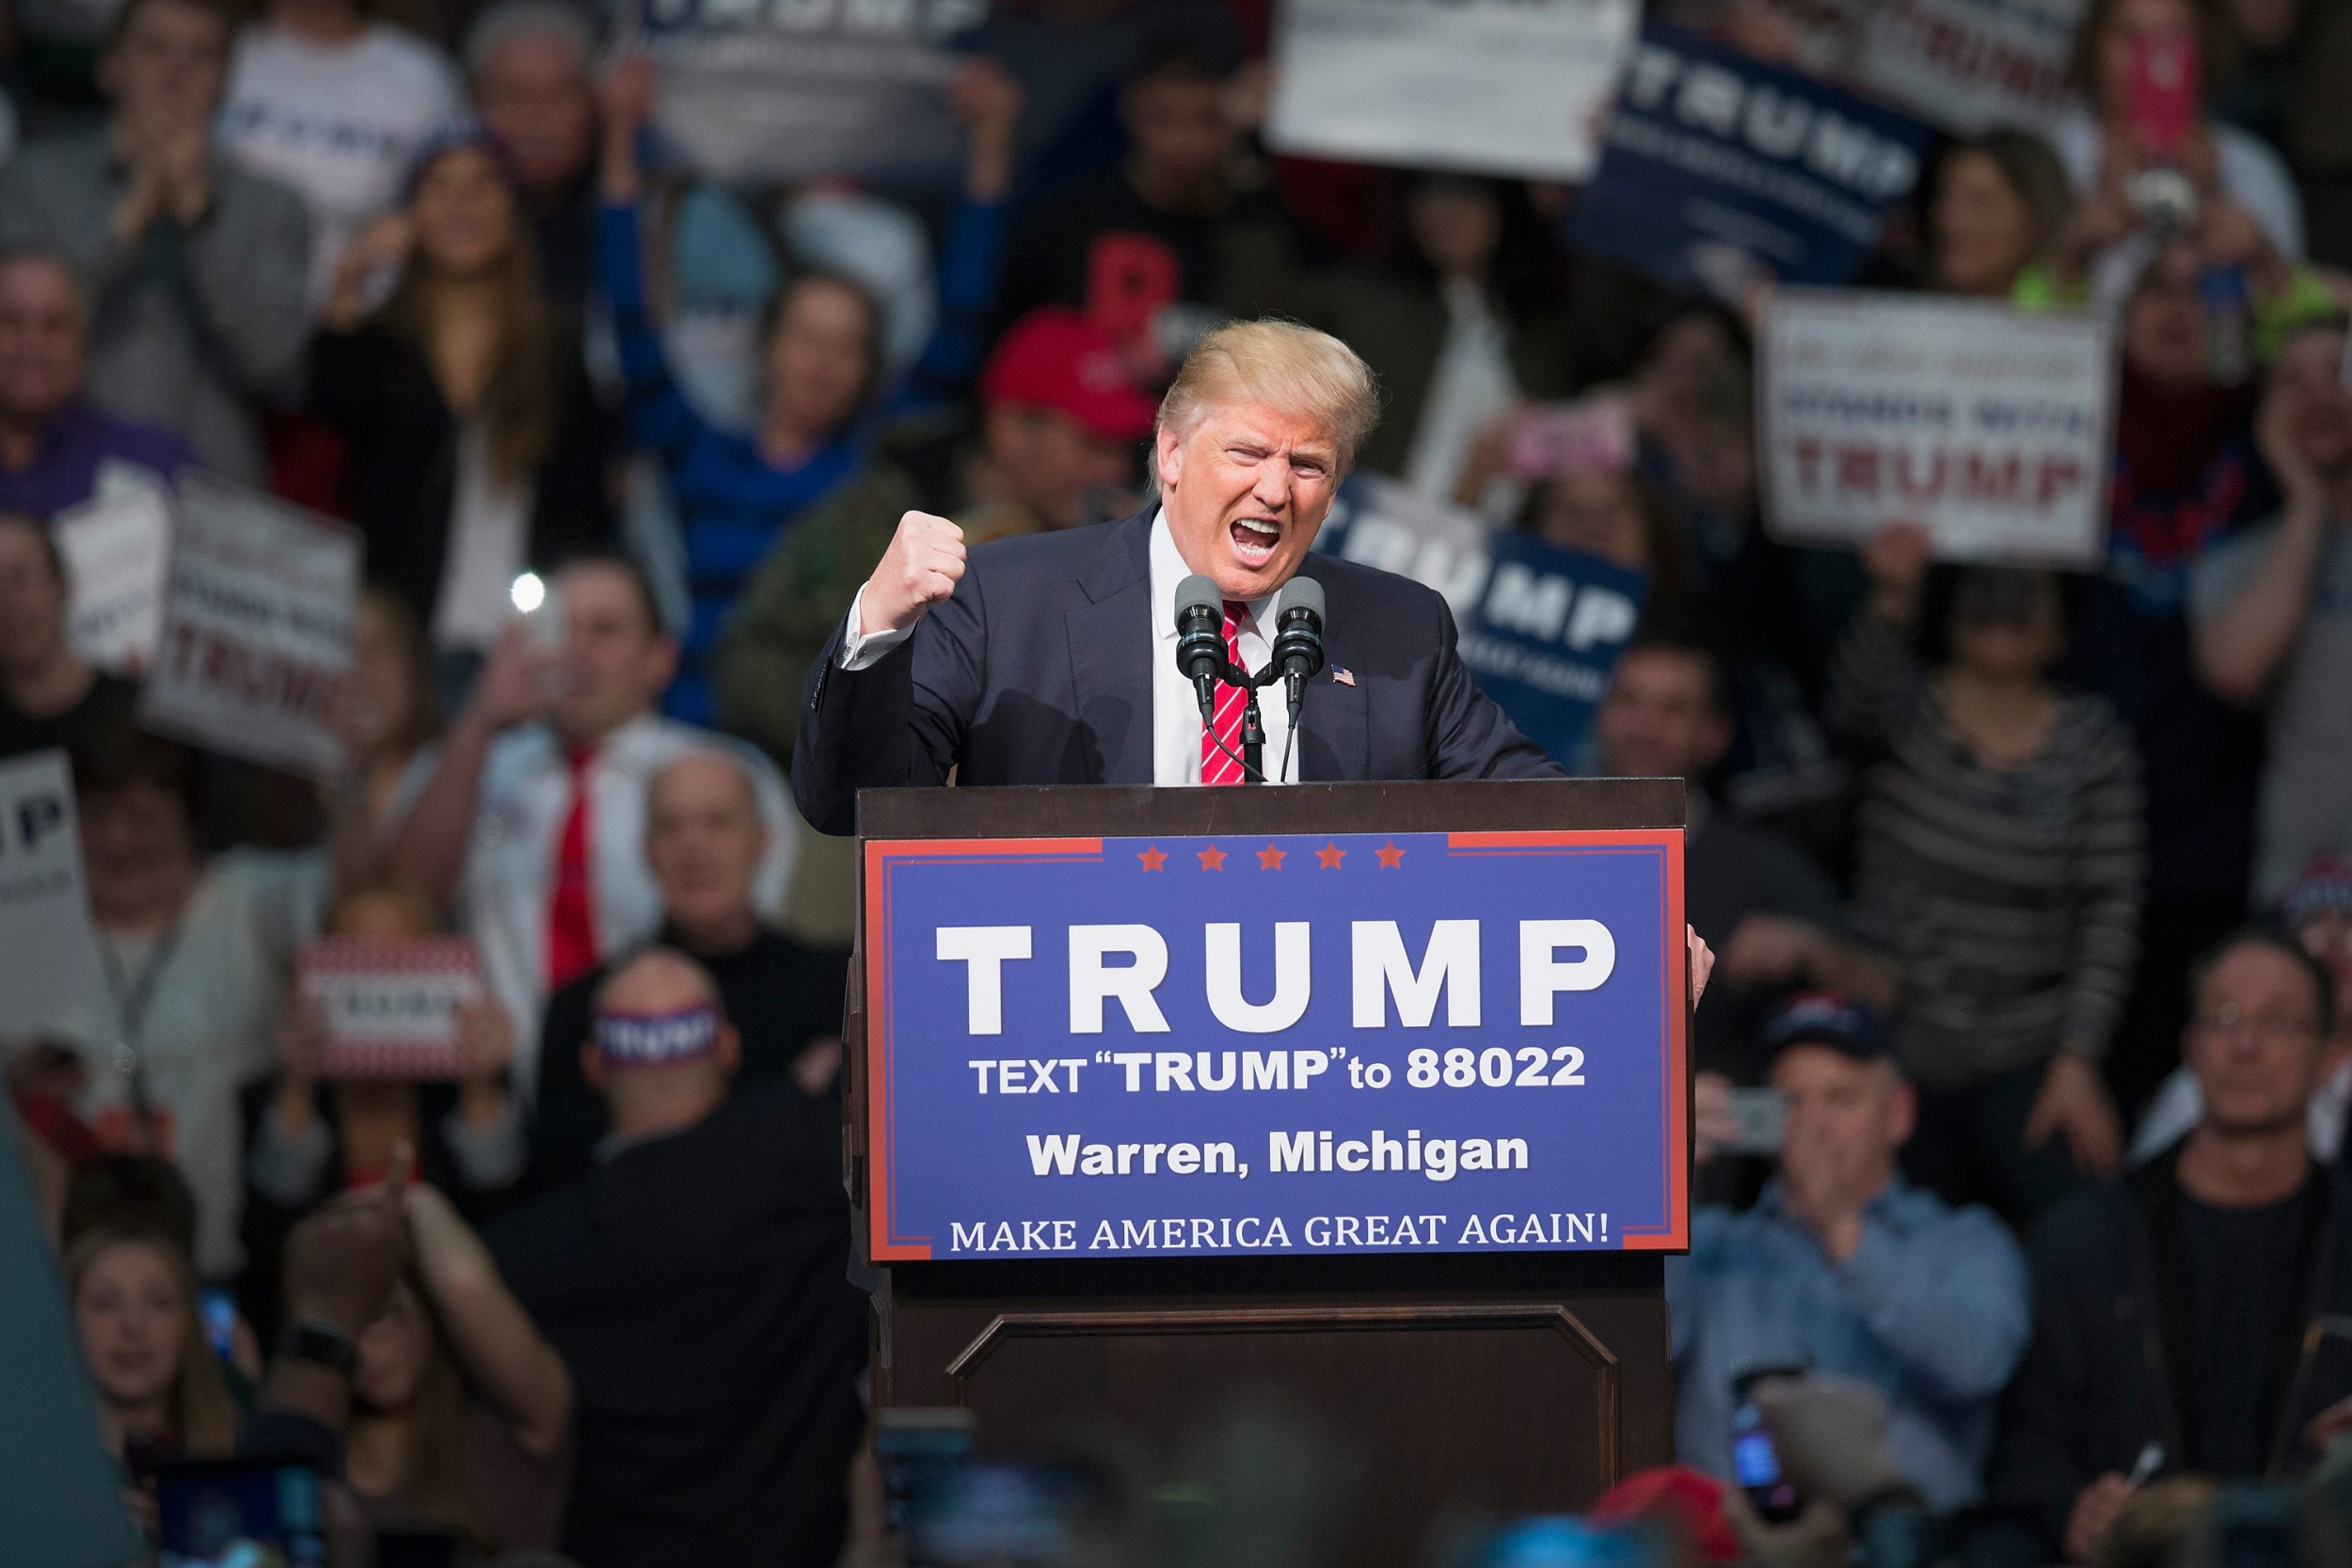 Donald Trump midwest, Republicans midterms